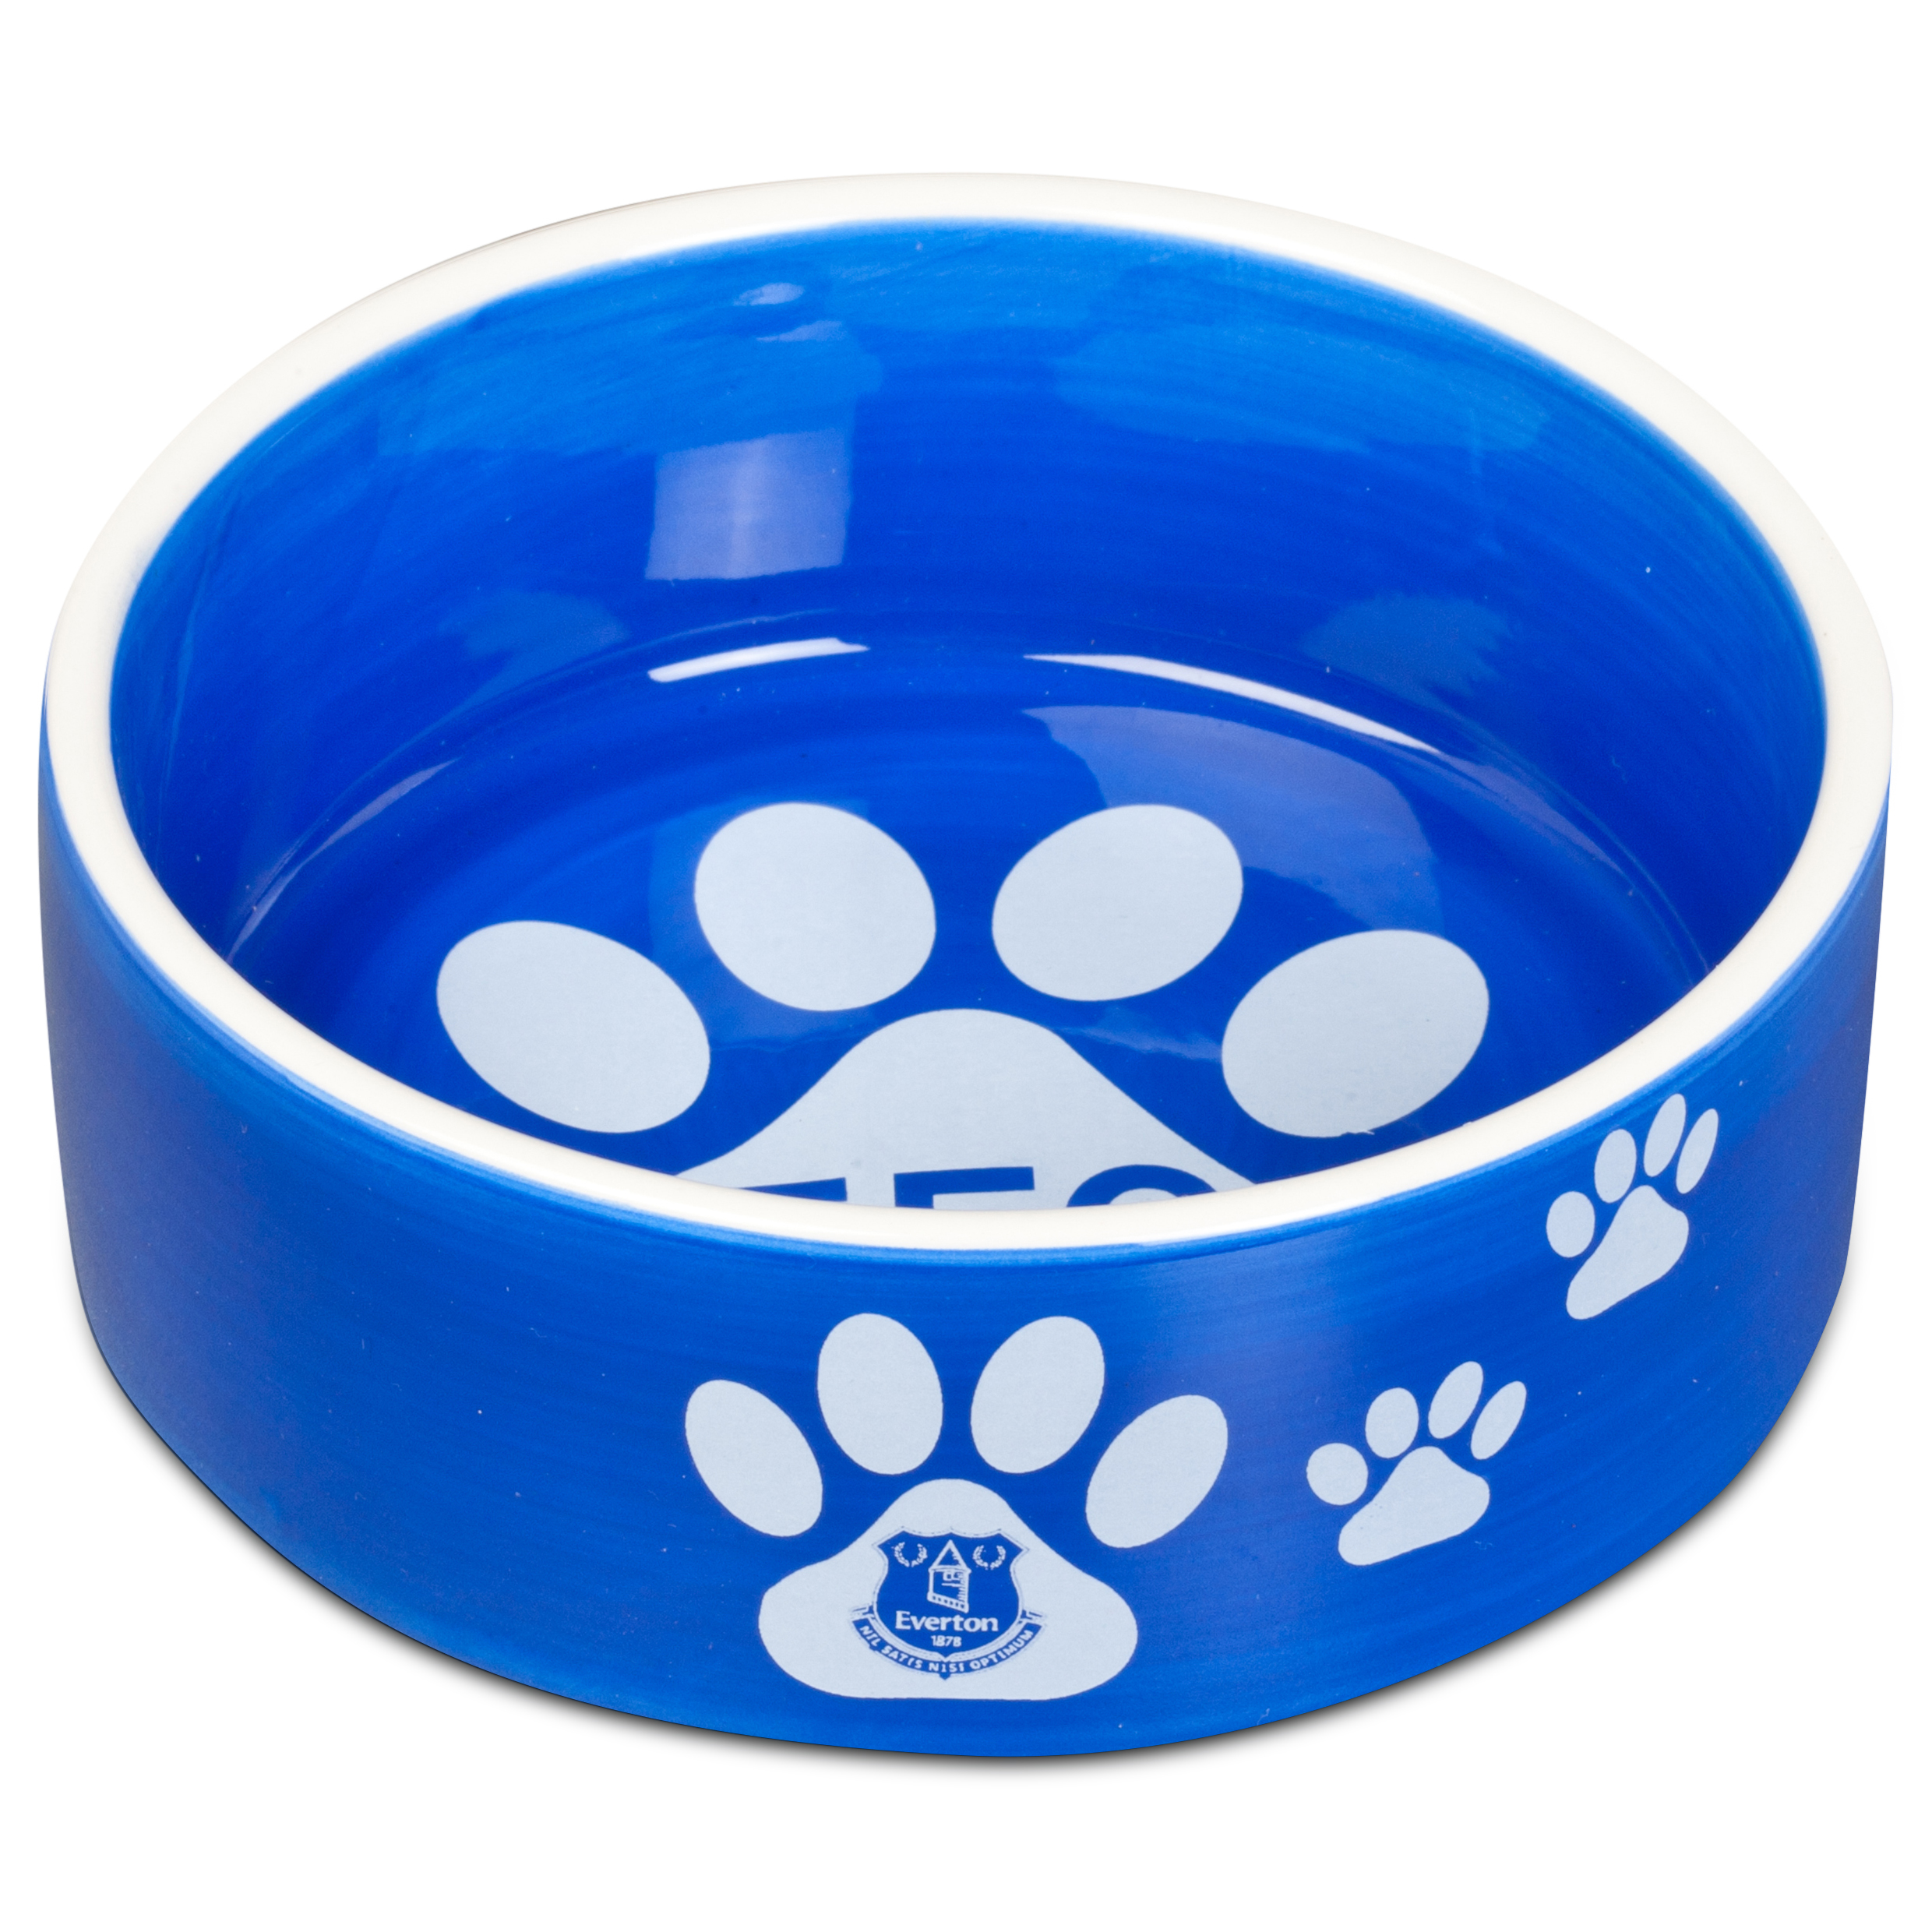 Everton Pet Bowl Small